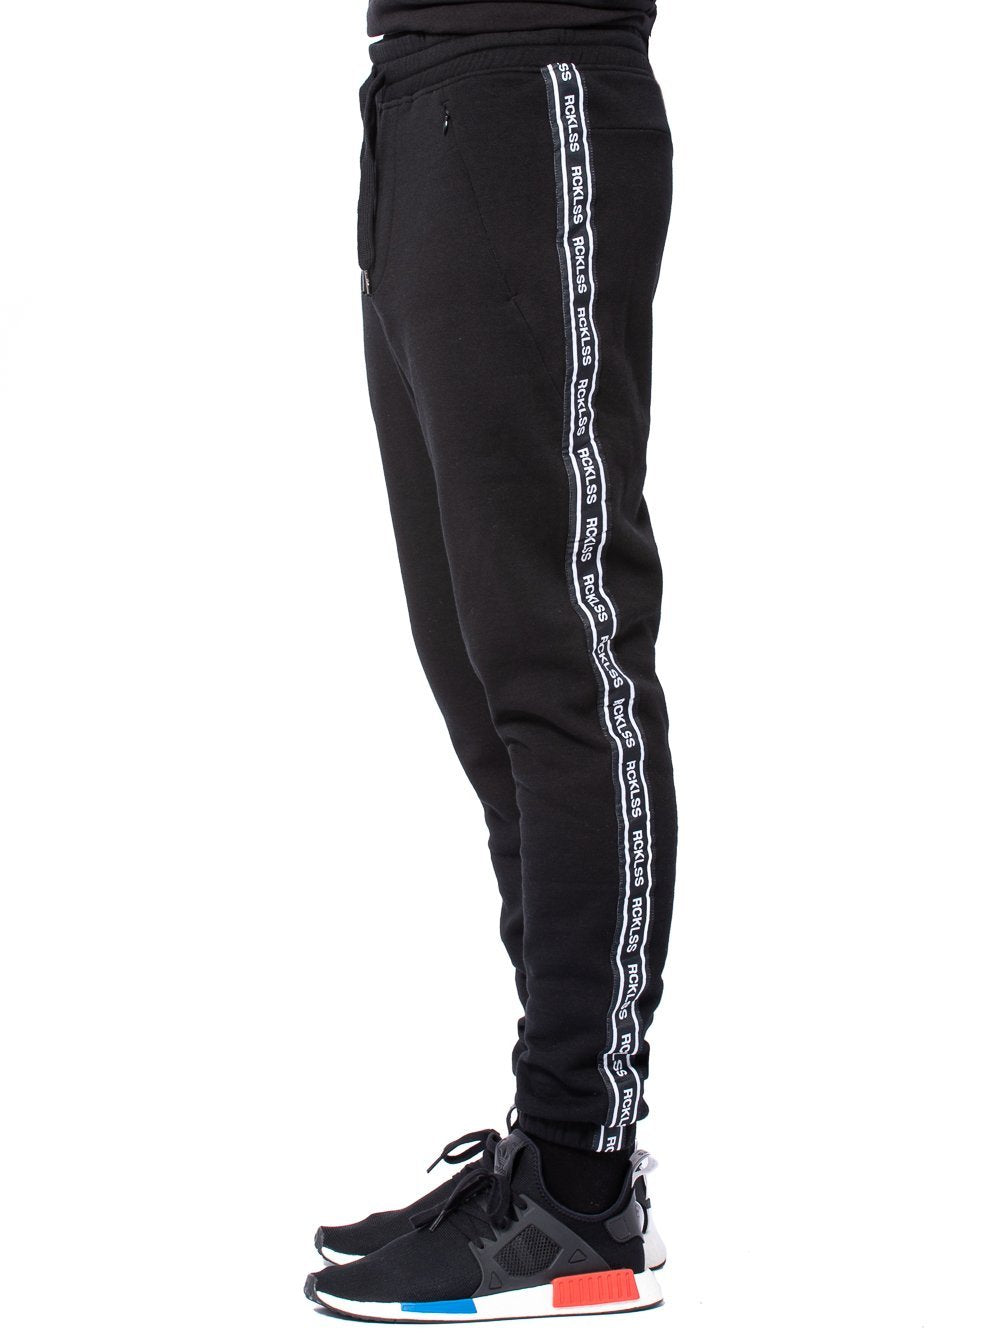 Young and Reckless Mens - Bottoms - Sweatpants Streamline Sweatpants - Black